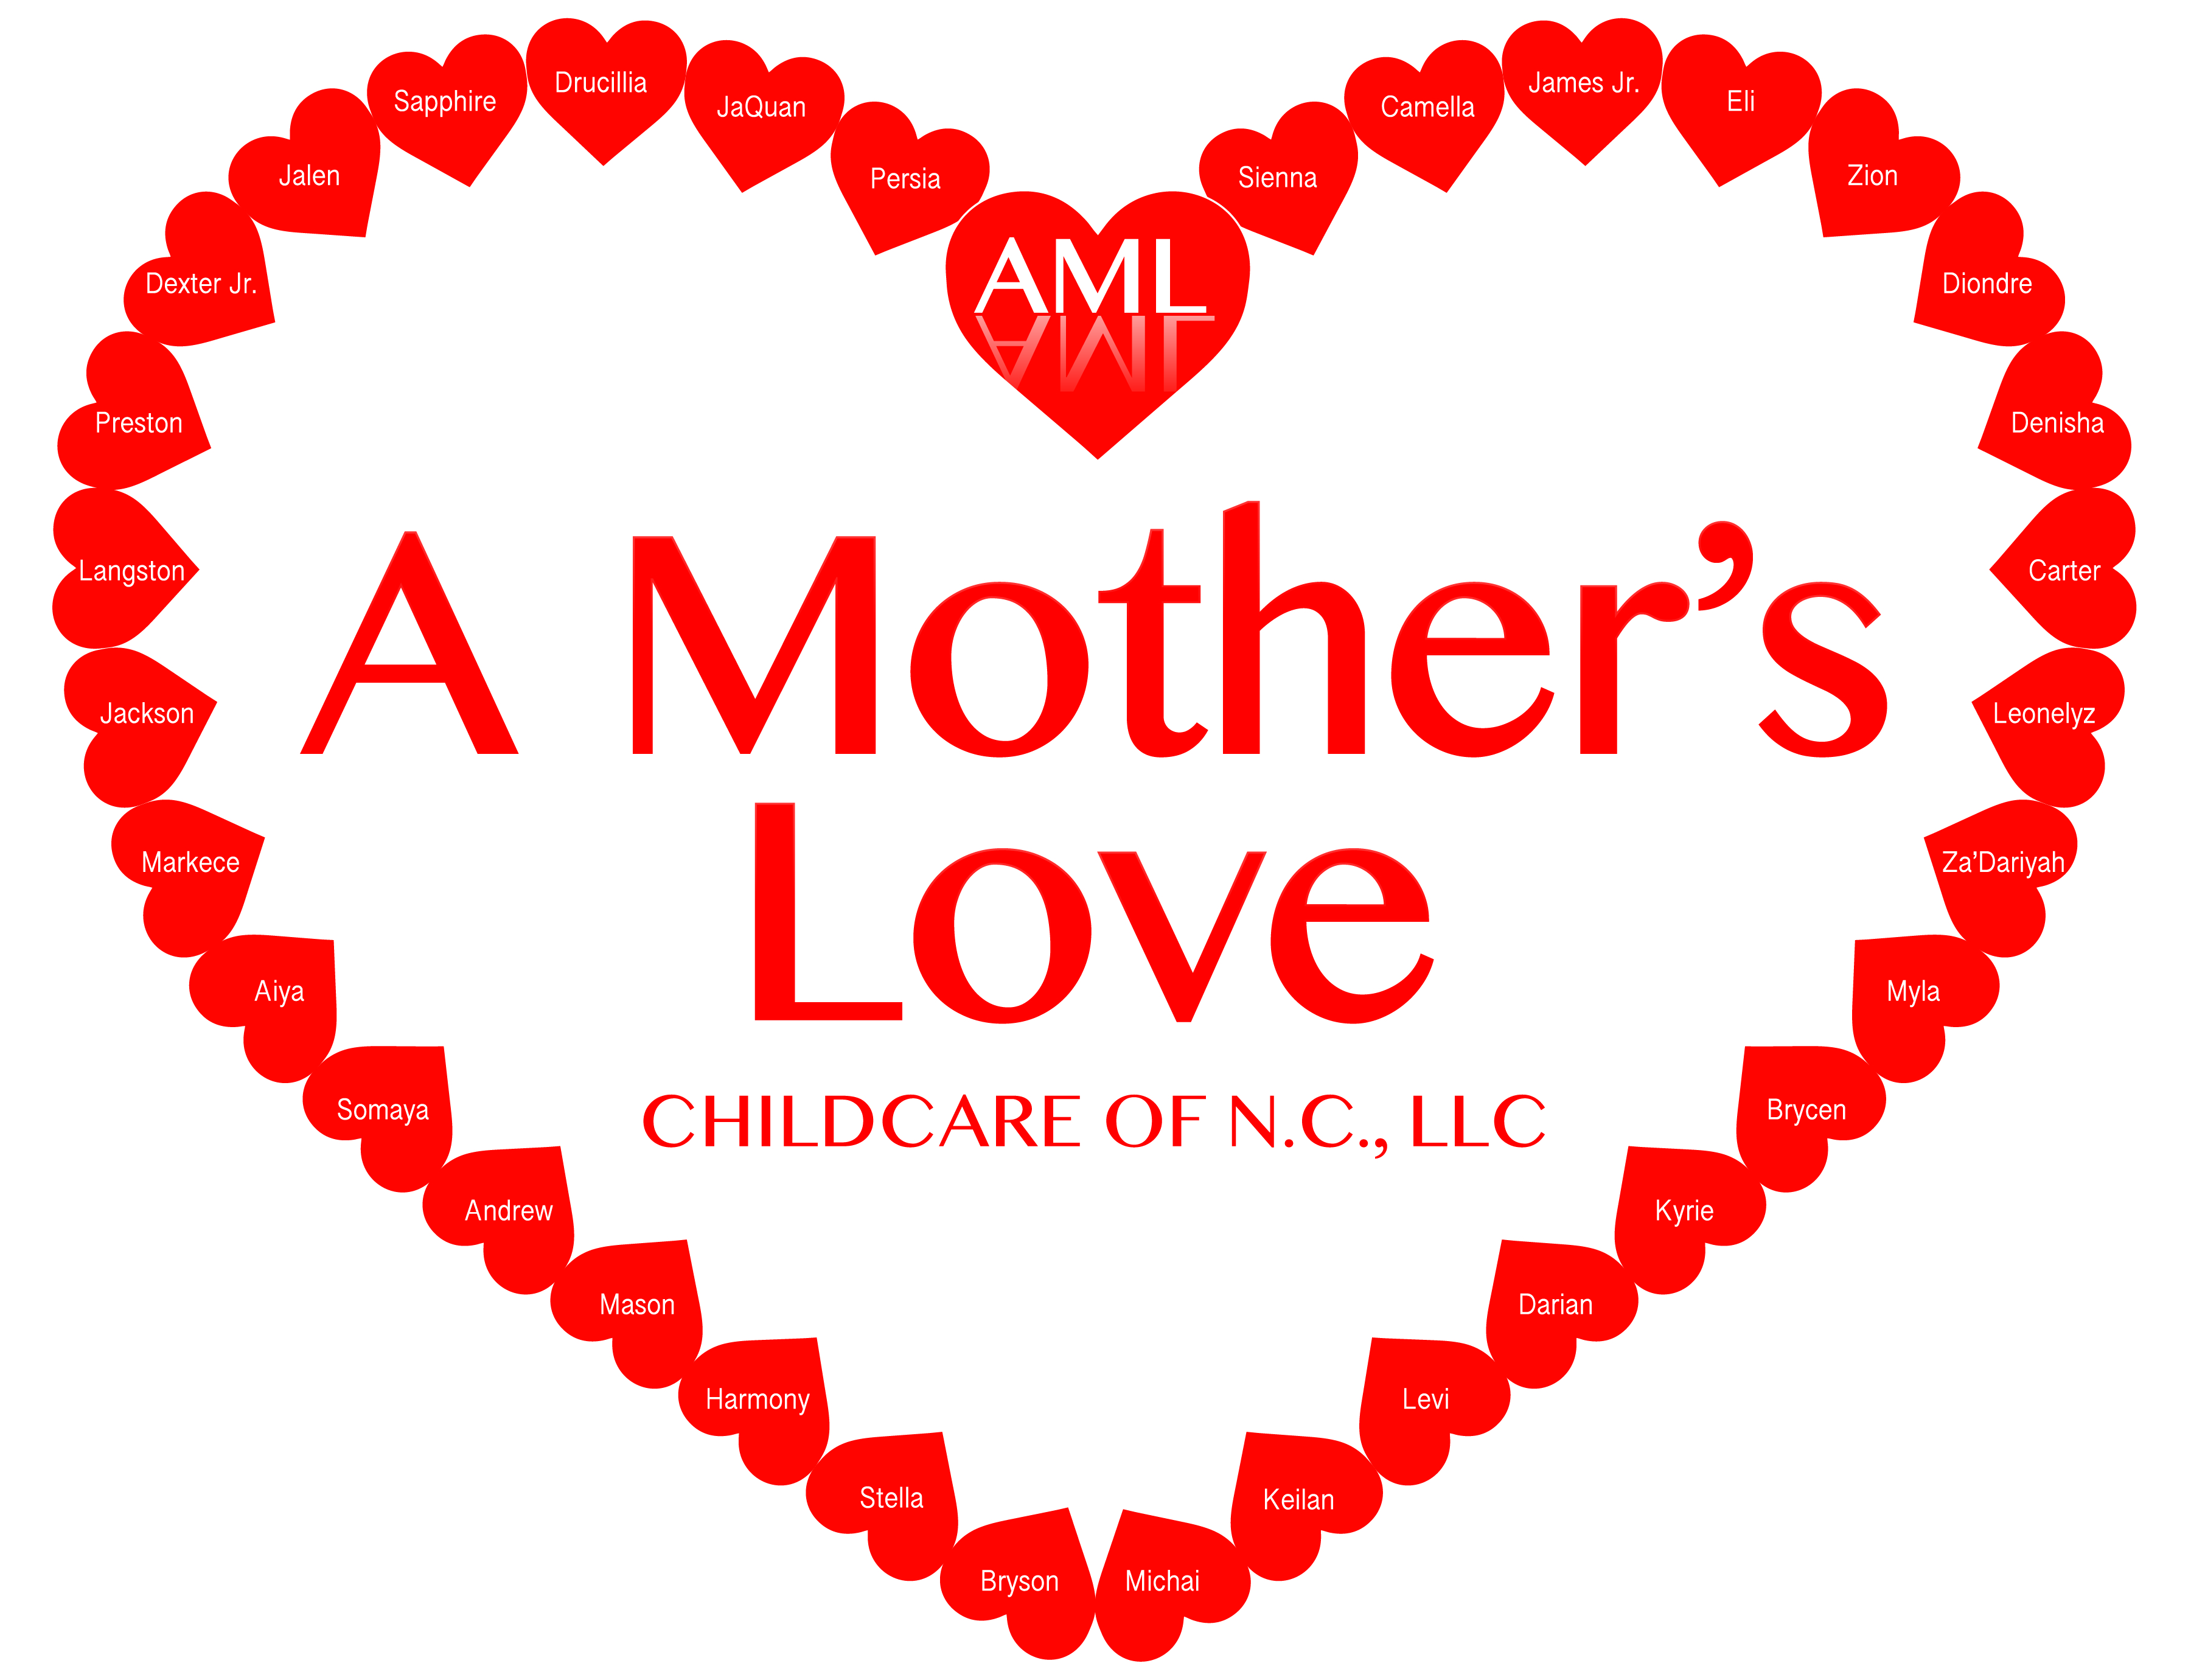 Llc In Nc >> A Mother S Love Child Care Of N C Llc Cary Nc